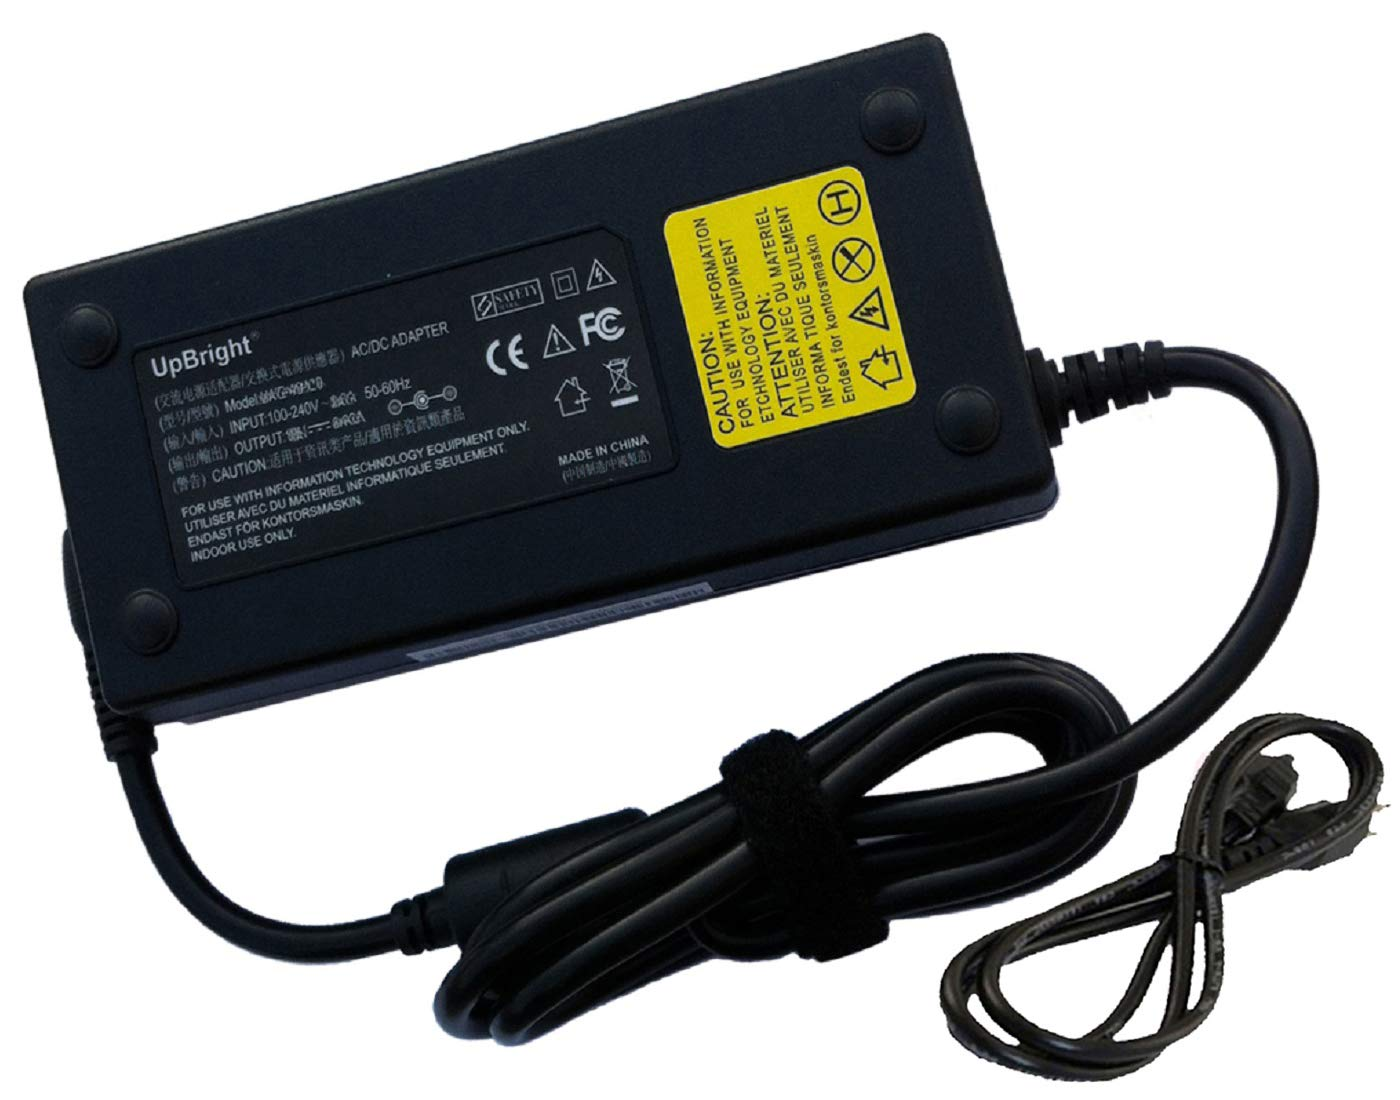 UpBright New Global AC/DC Adapter for iBuyPower Valkyrie CZ-17 CZ-27 iBuy Power Gaming Power Supply Cord Cable PS Battery Charger Mains PSU